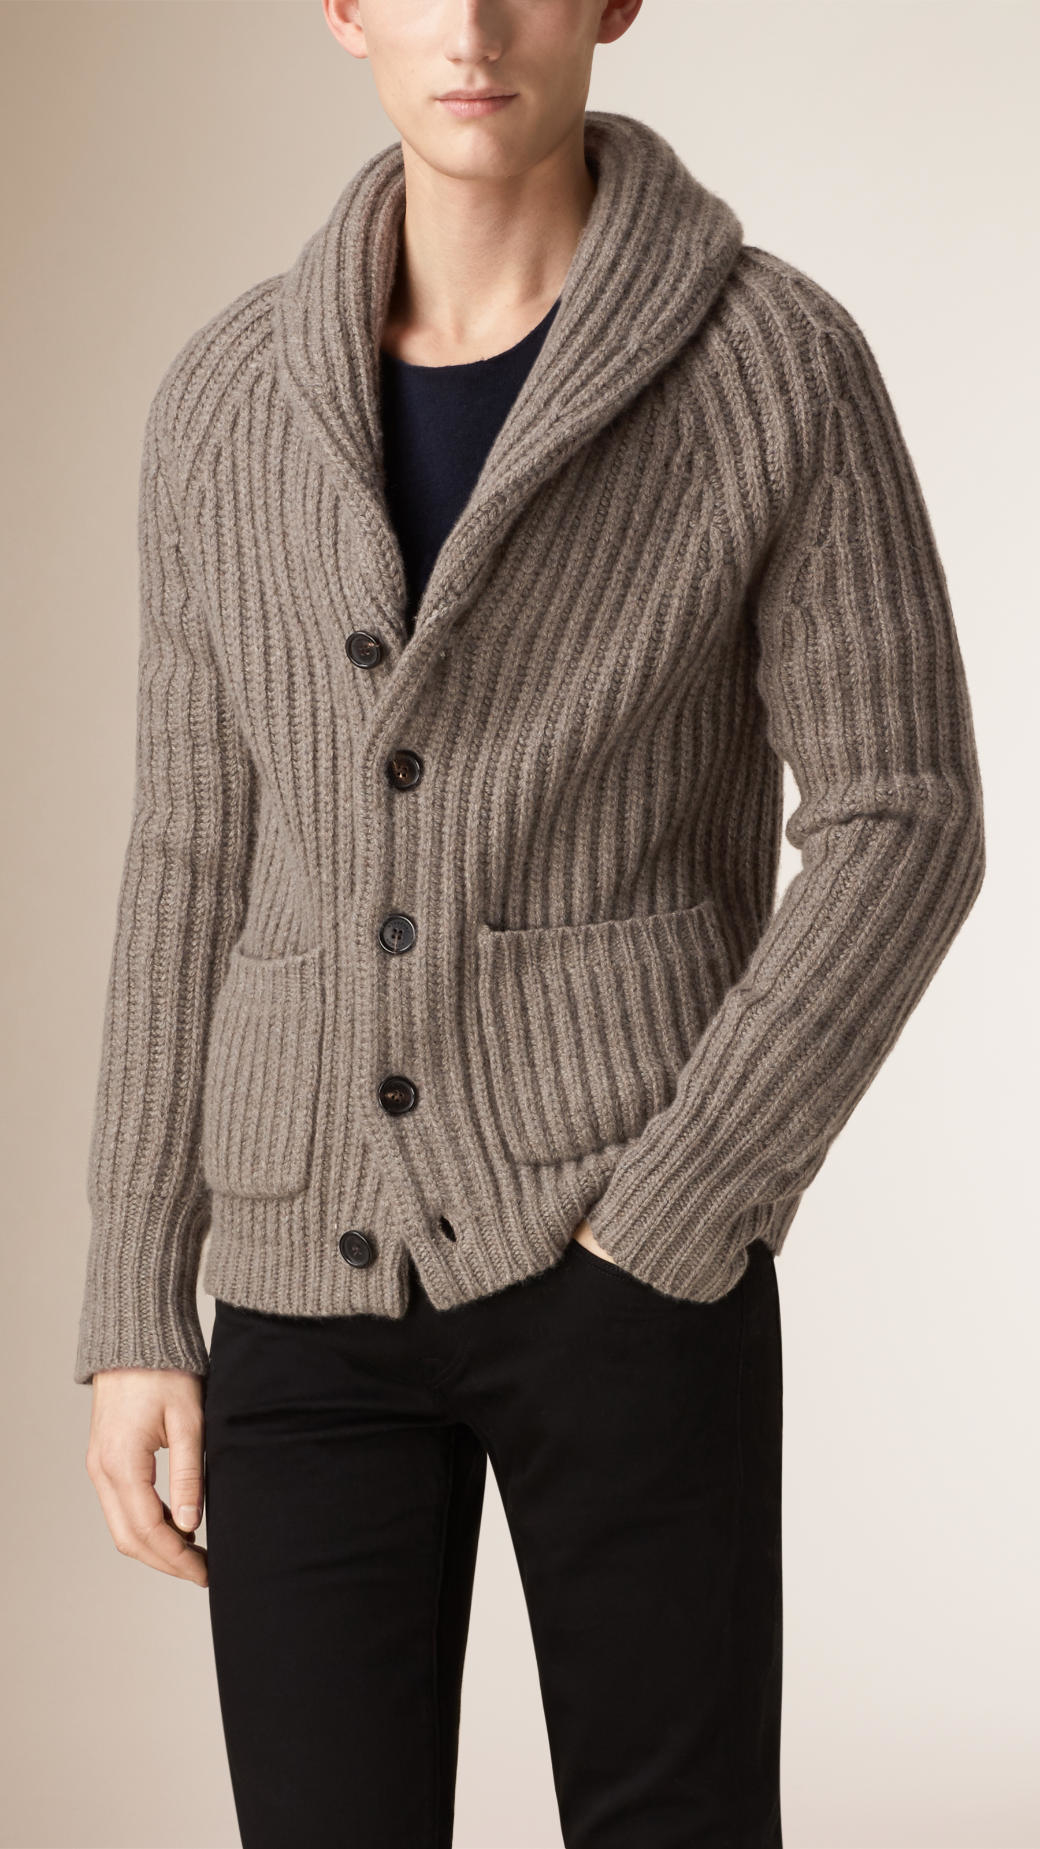 Aran Sweater Market is your one stop shop for Mens Wool Sweaters and the famous Irish Fisherman sweater also know as the Aran Sweater. % Irish made by skilled craftspersons, browse our Mens Knits to find your perfect Irish Sweater Men's Shawl Neck Cardigan. $ $ Choose Options. Men's V-Neck Waistcoat. $ $ Choose.